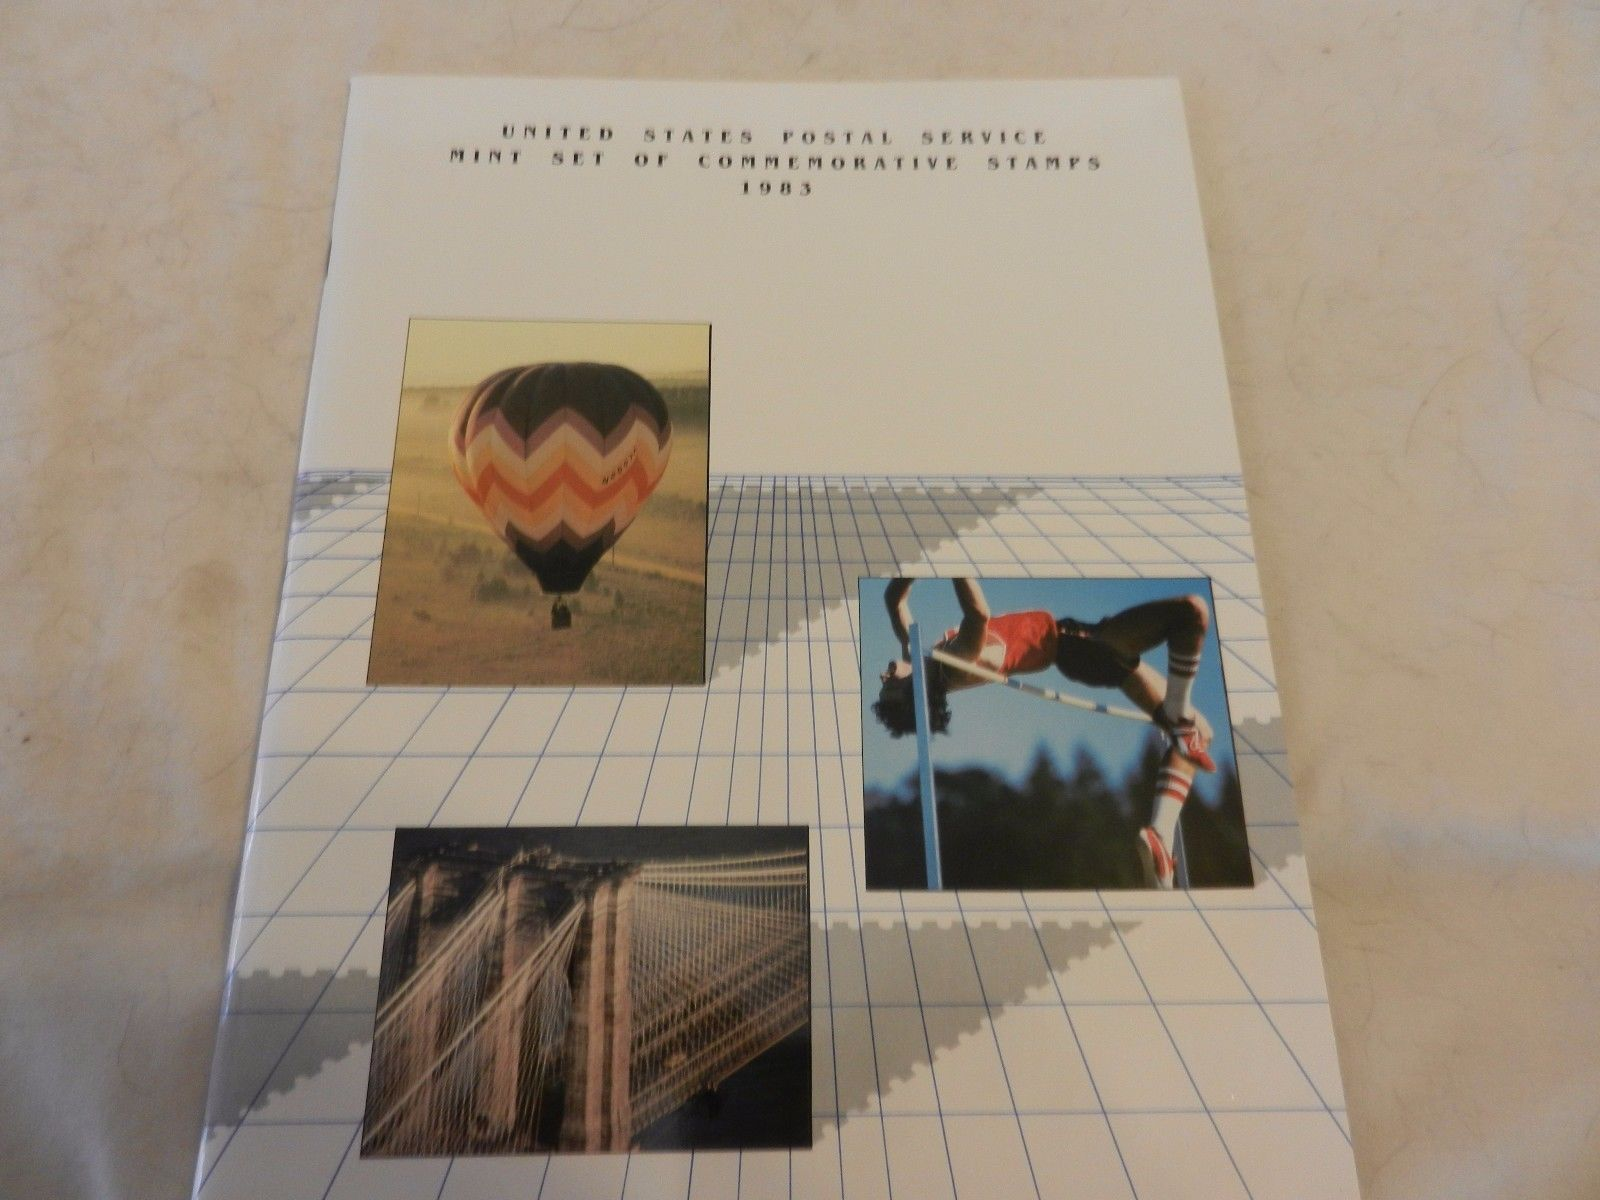 1983 USPS Mint Set of Commemorative Stamps Book Only no stamps